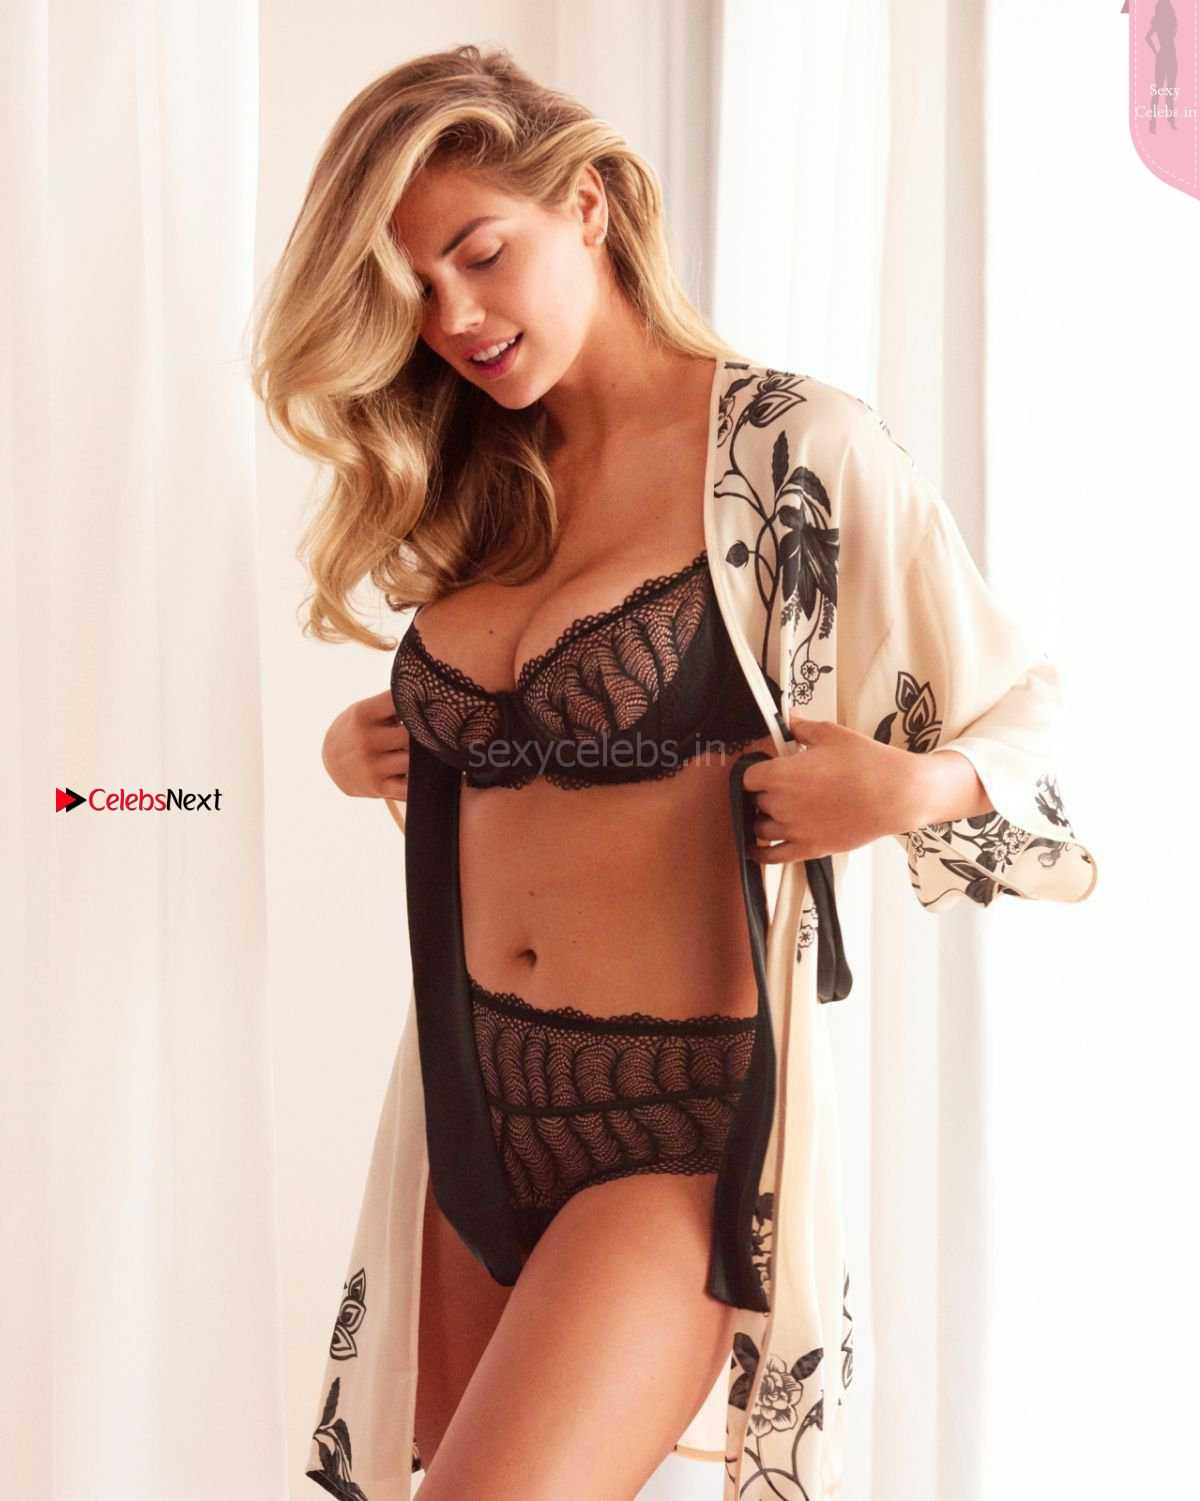 Kate+Upton+Cleavages+Boobs+IN+Bra+and+Panties+Yamamay+Confident+Beauty+2018+Campaign+%7E+SexyCelebs.in+Exclusive+002.jpg